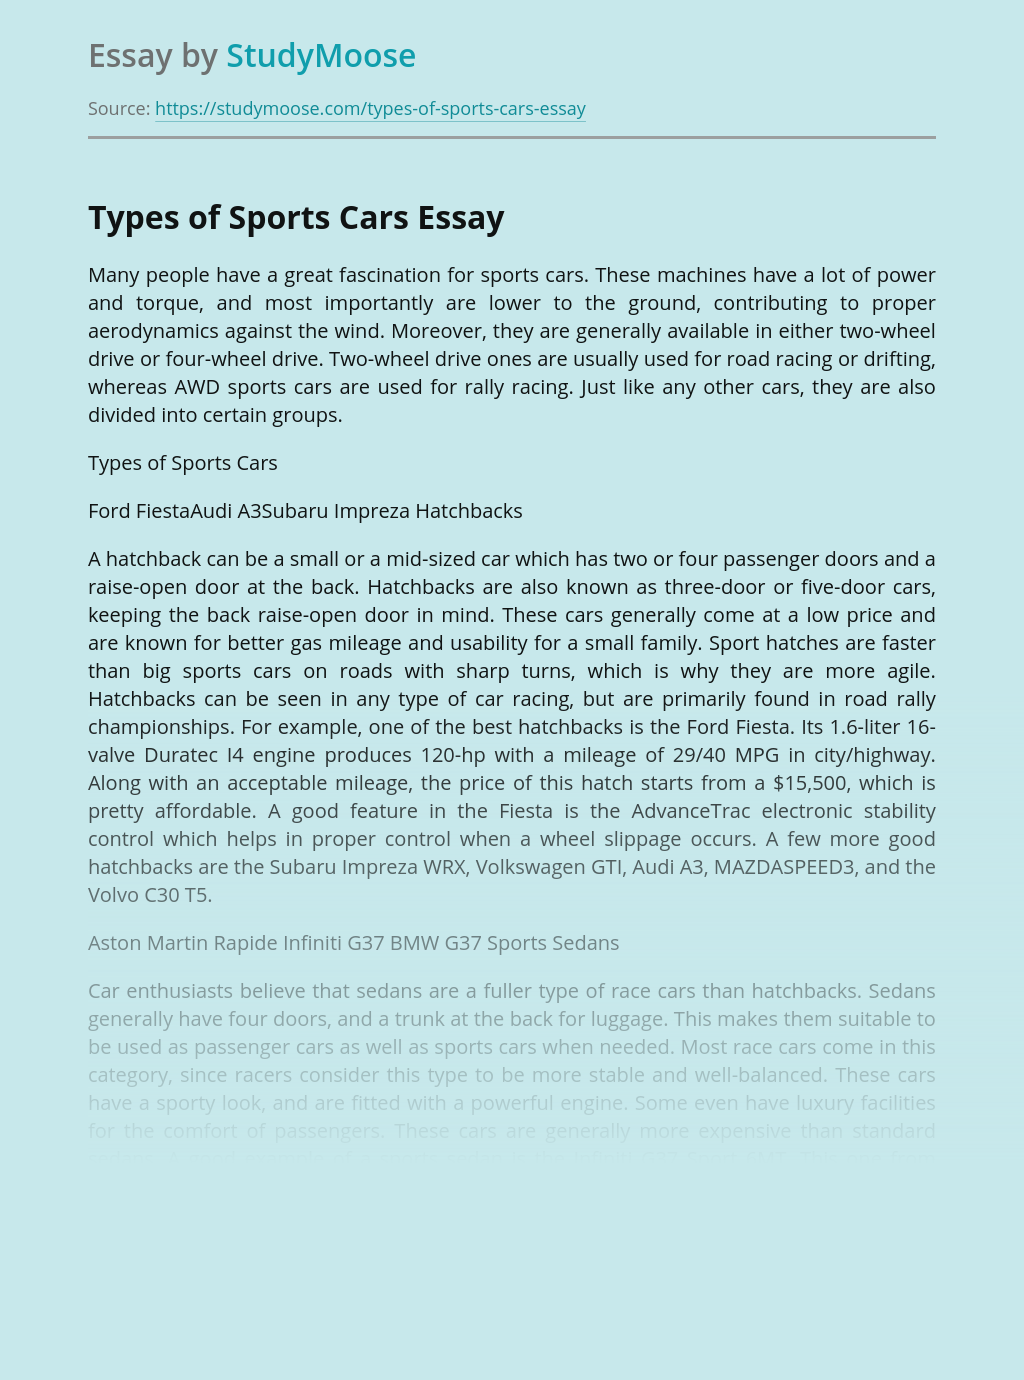 Types of Sports Cars